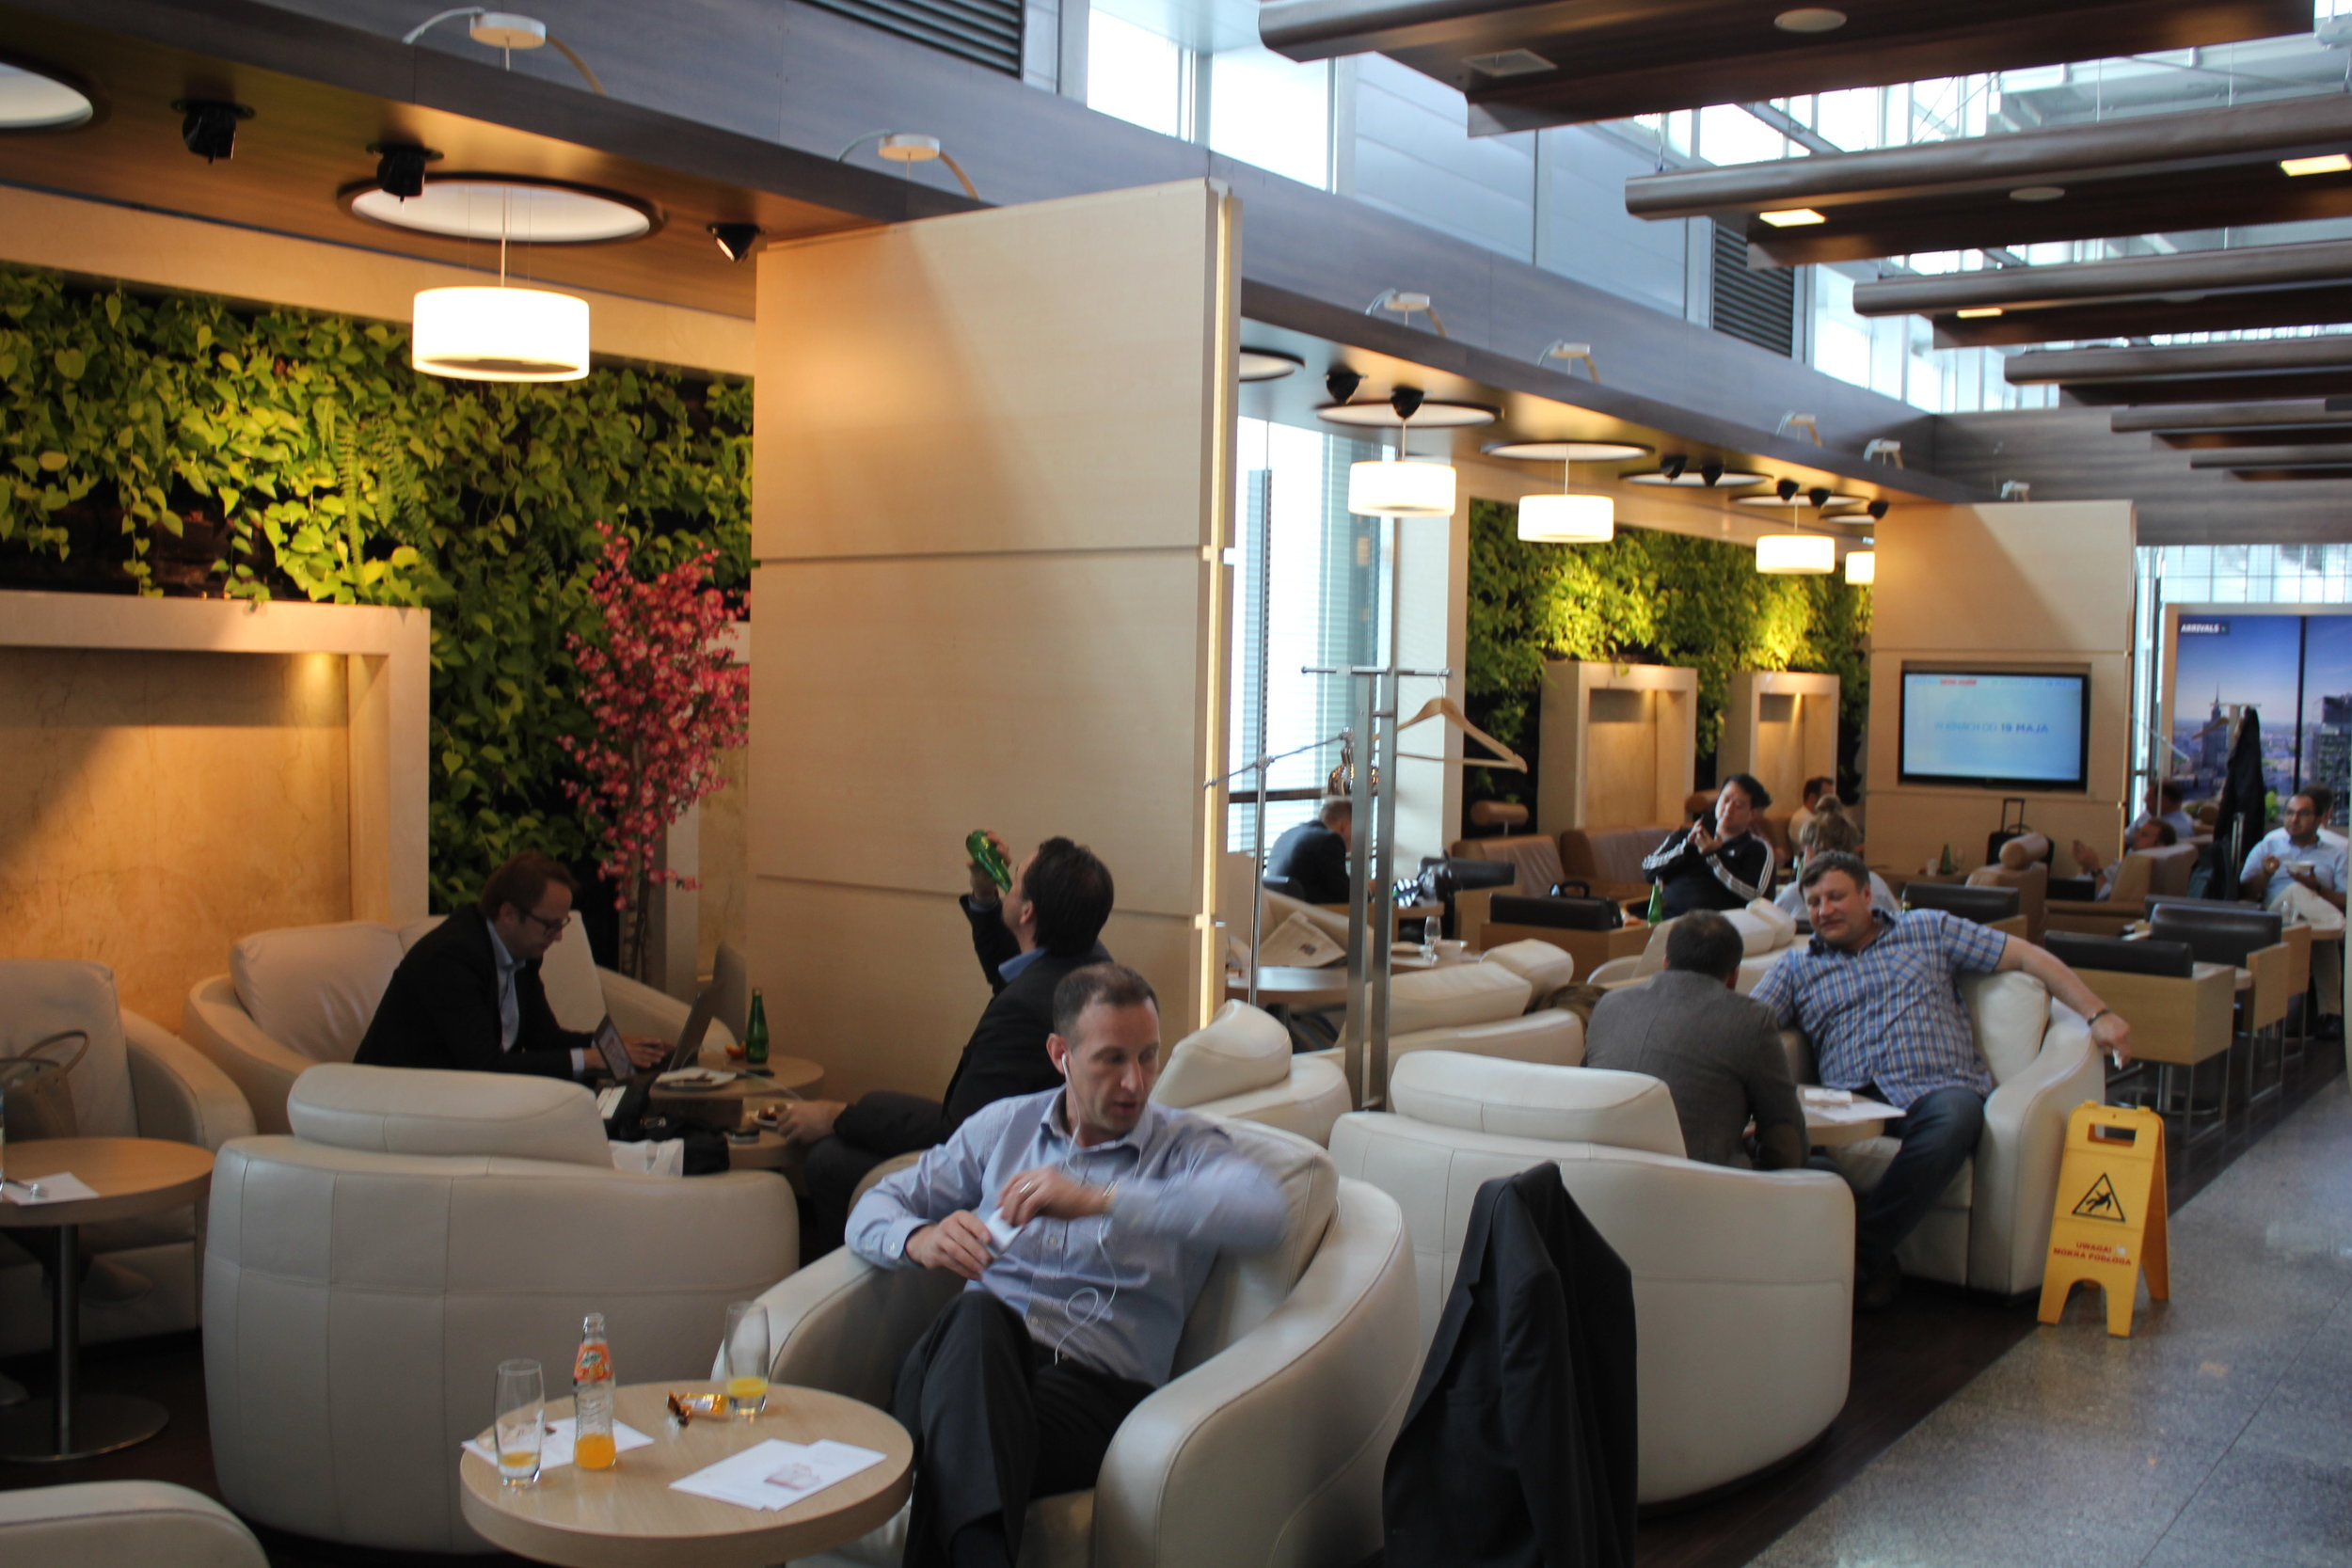 LOT Business Lounge Warsaw – Seating area